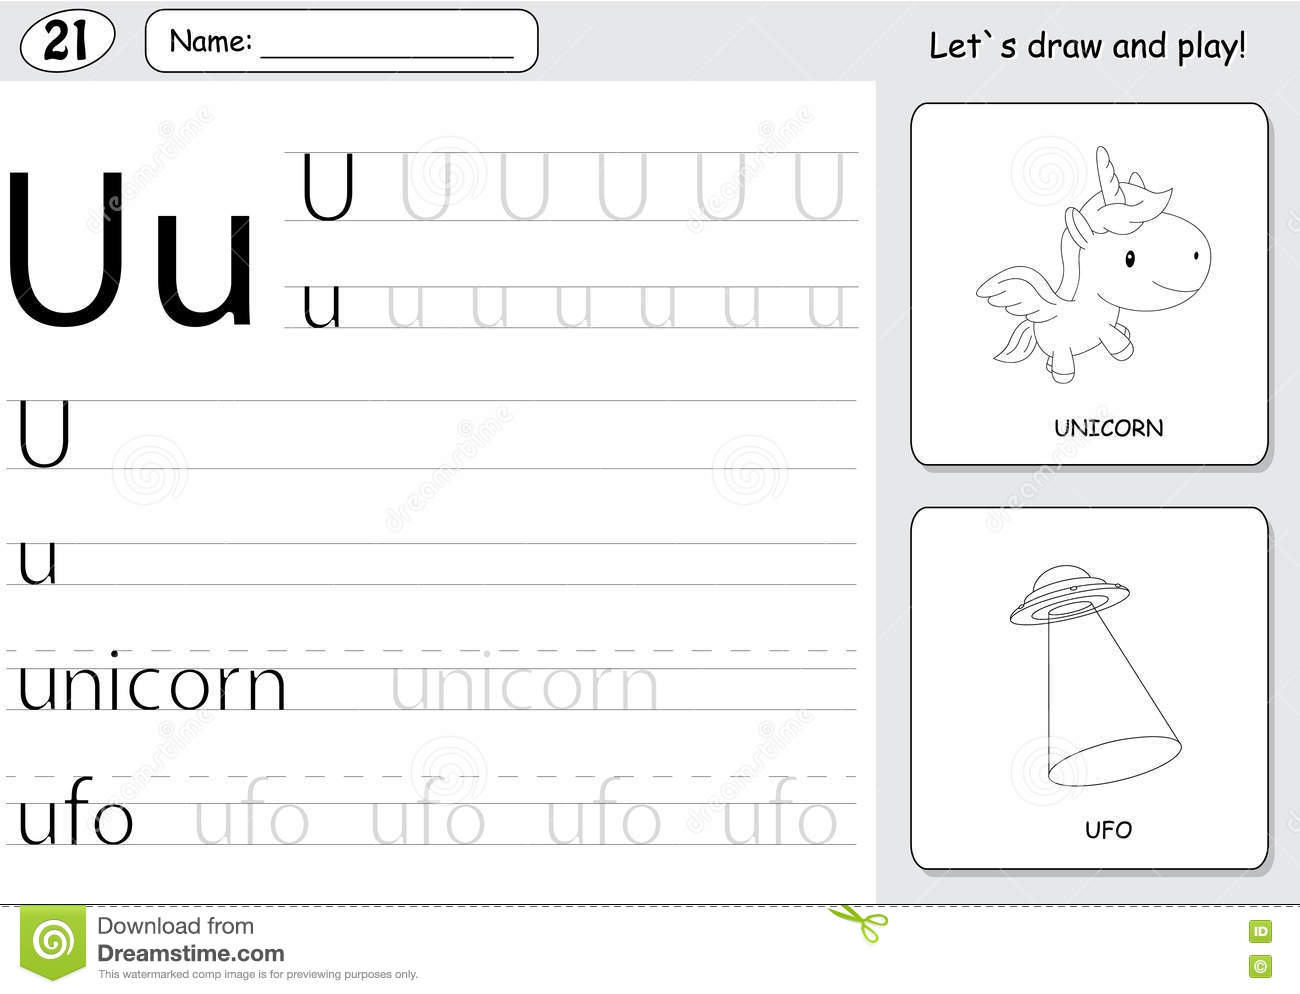 Unicorn Tracing Worksheets For Kids